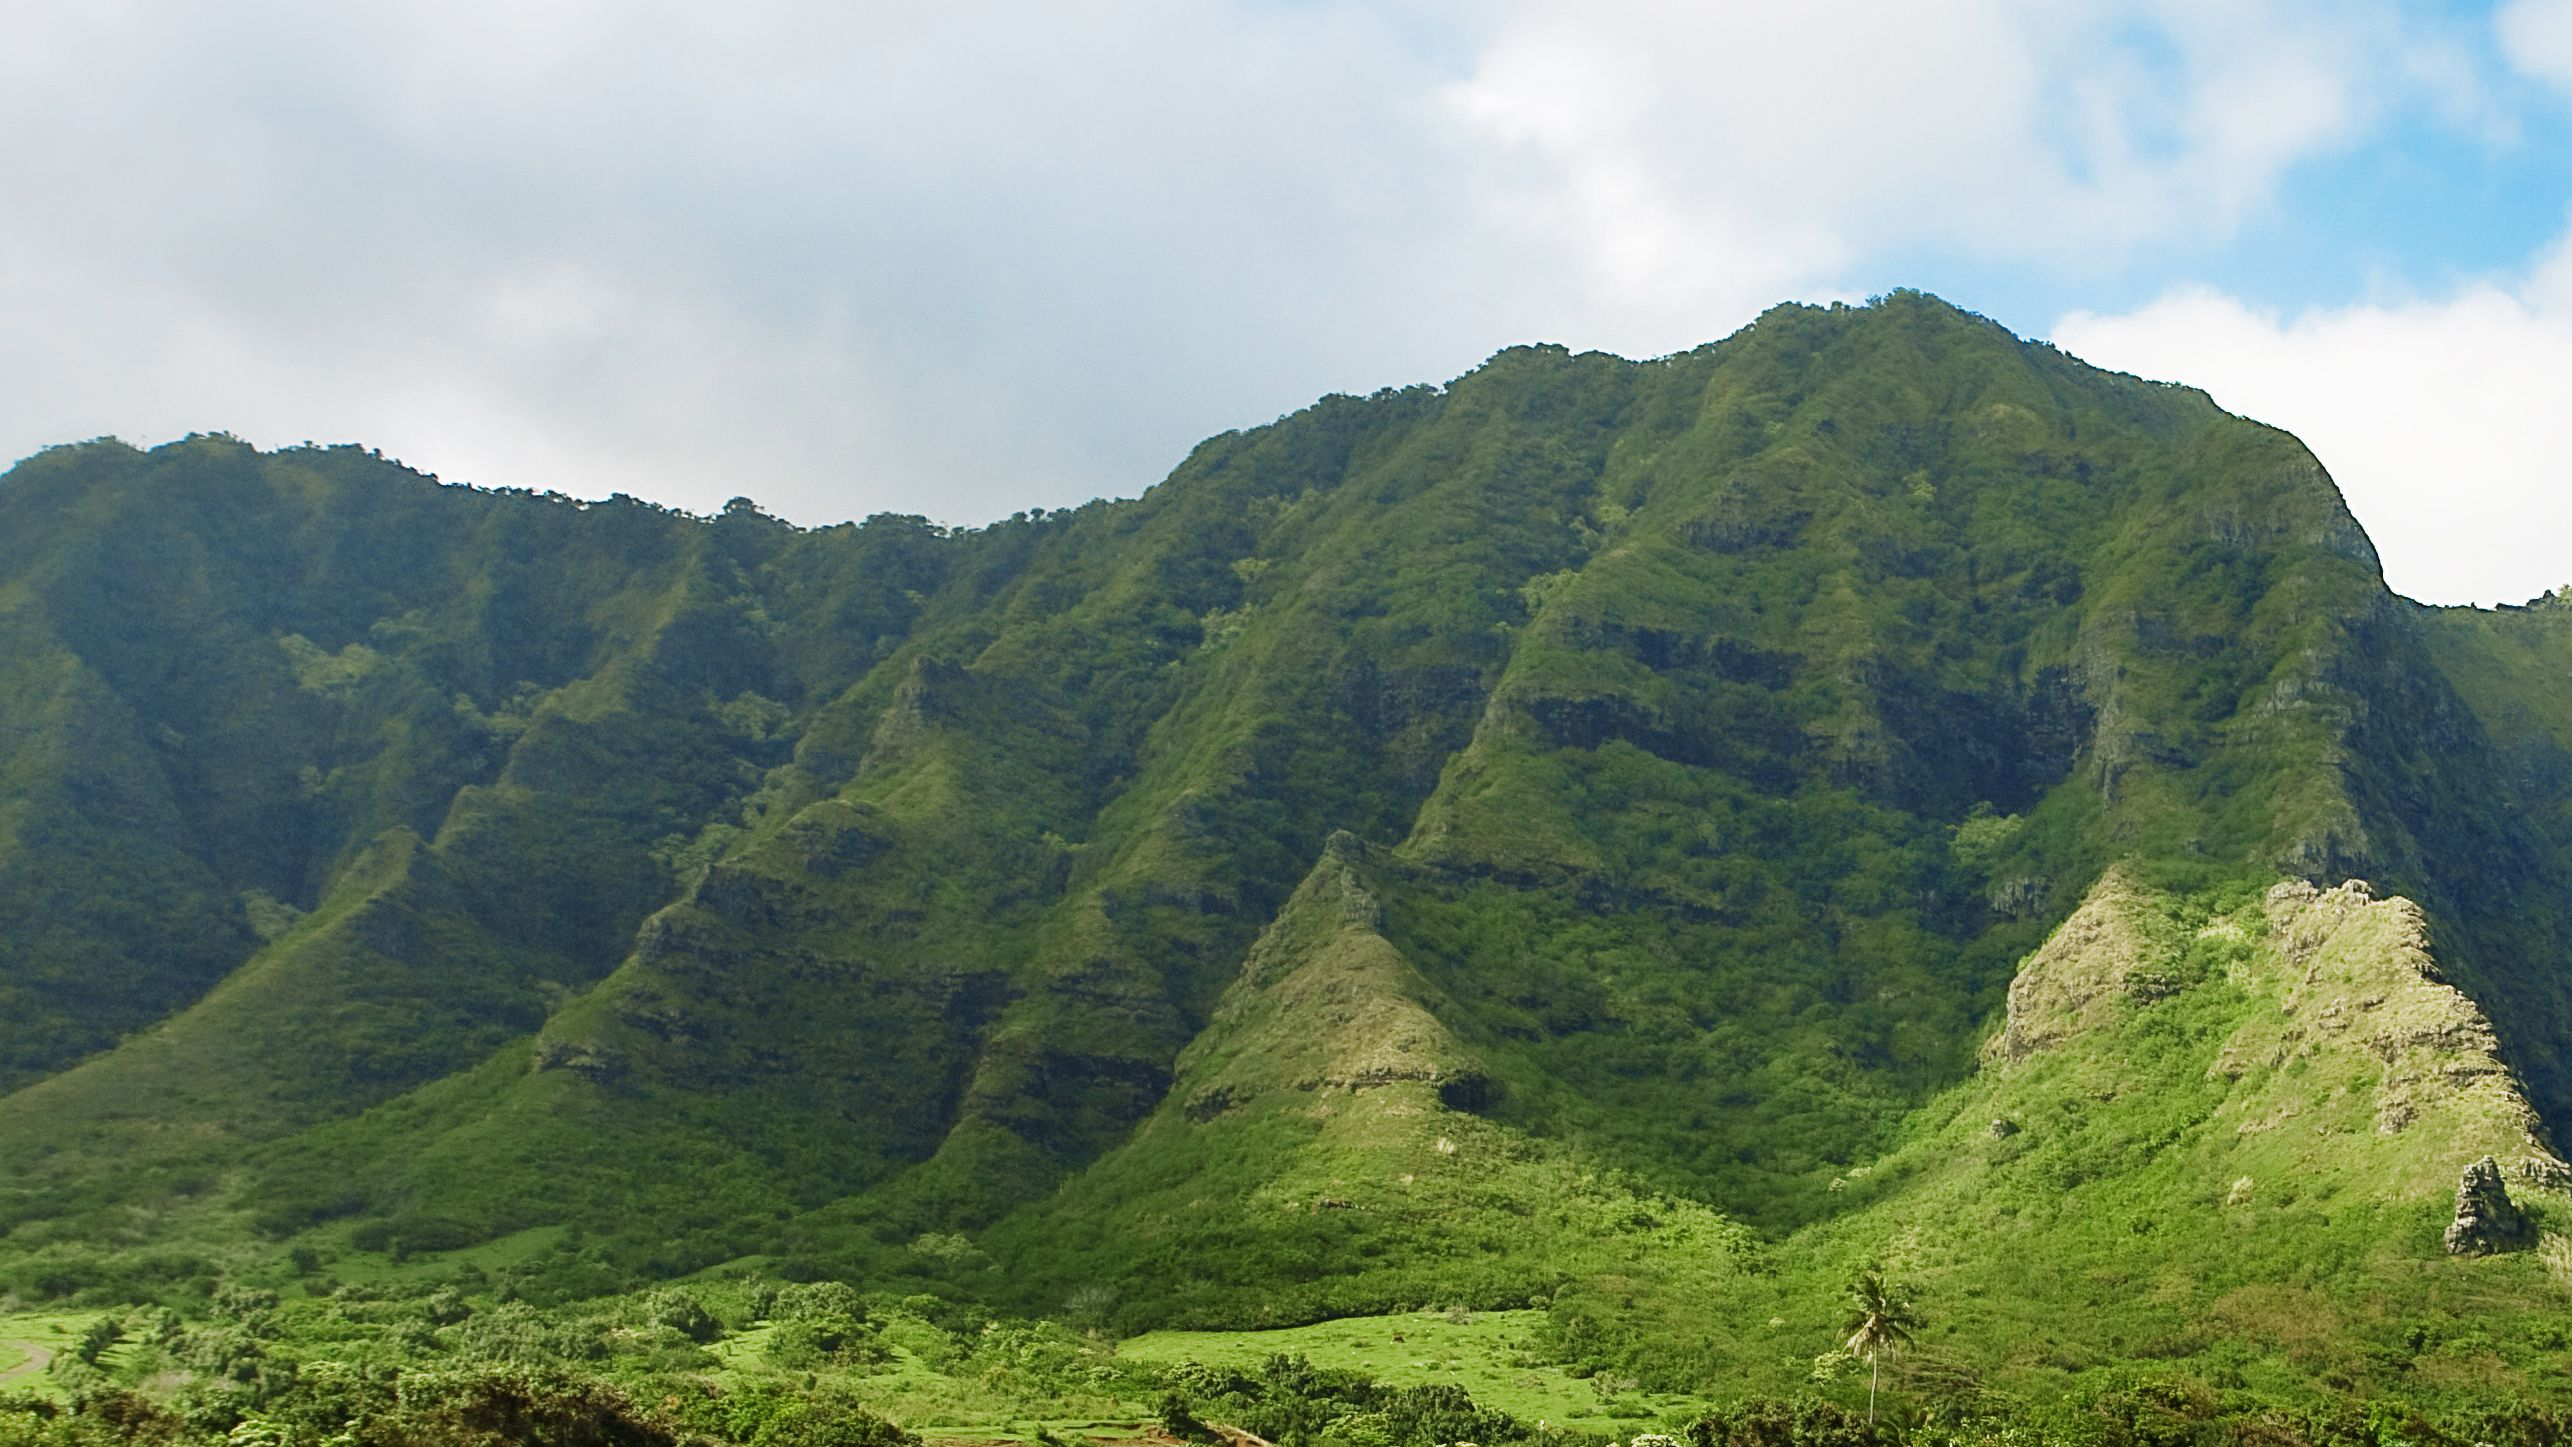 View of green mountain in Oahu